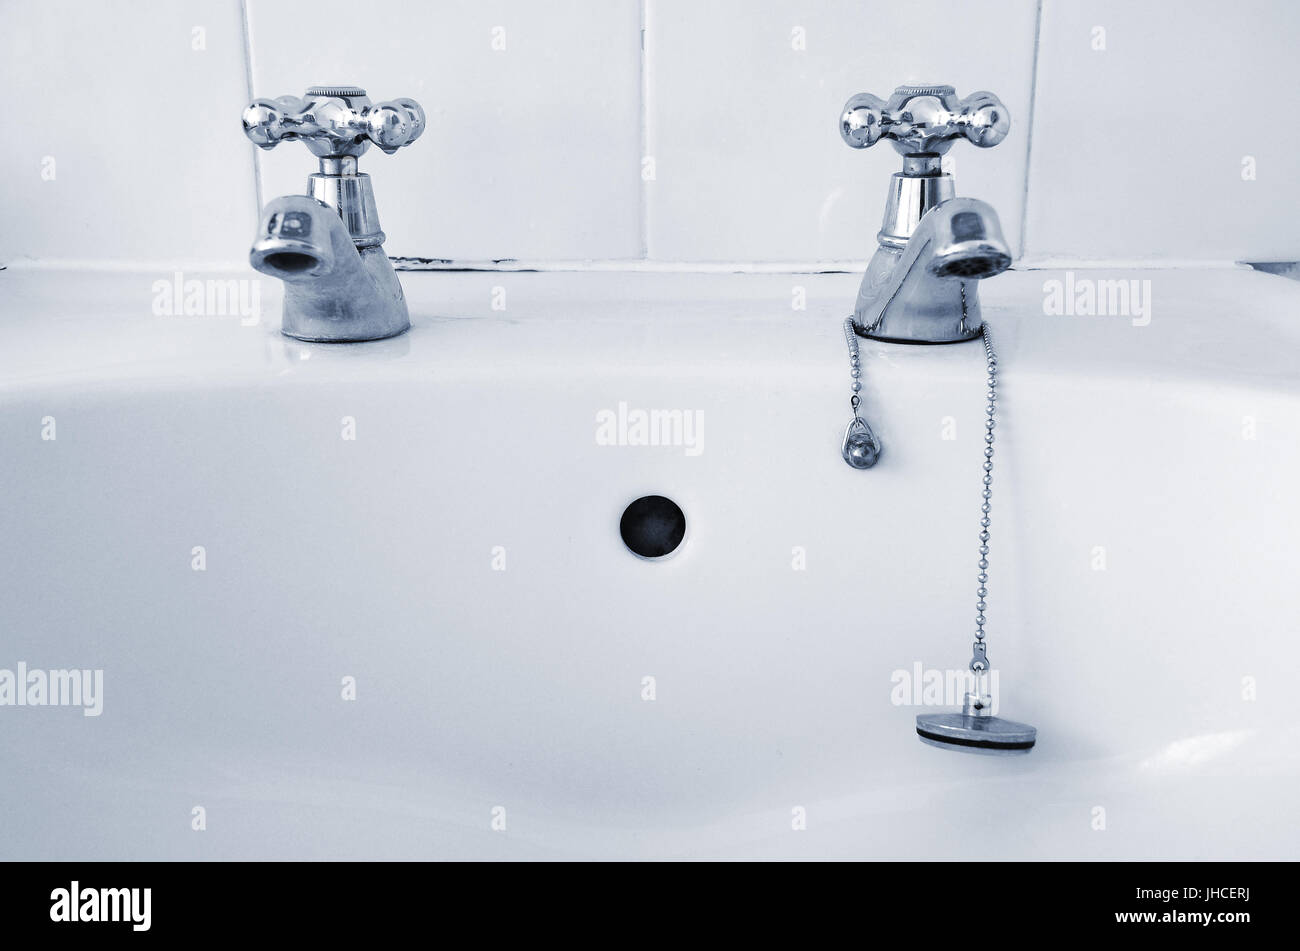 A pair of silver taps on a white sink with a plug on a chain - Stock Image